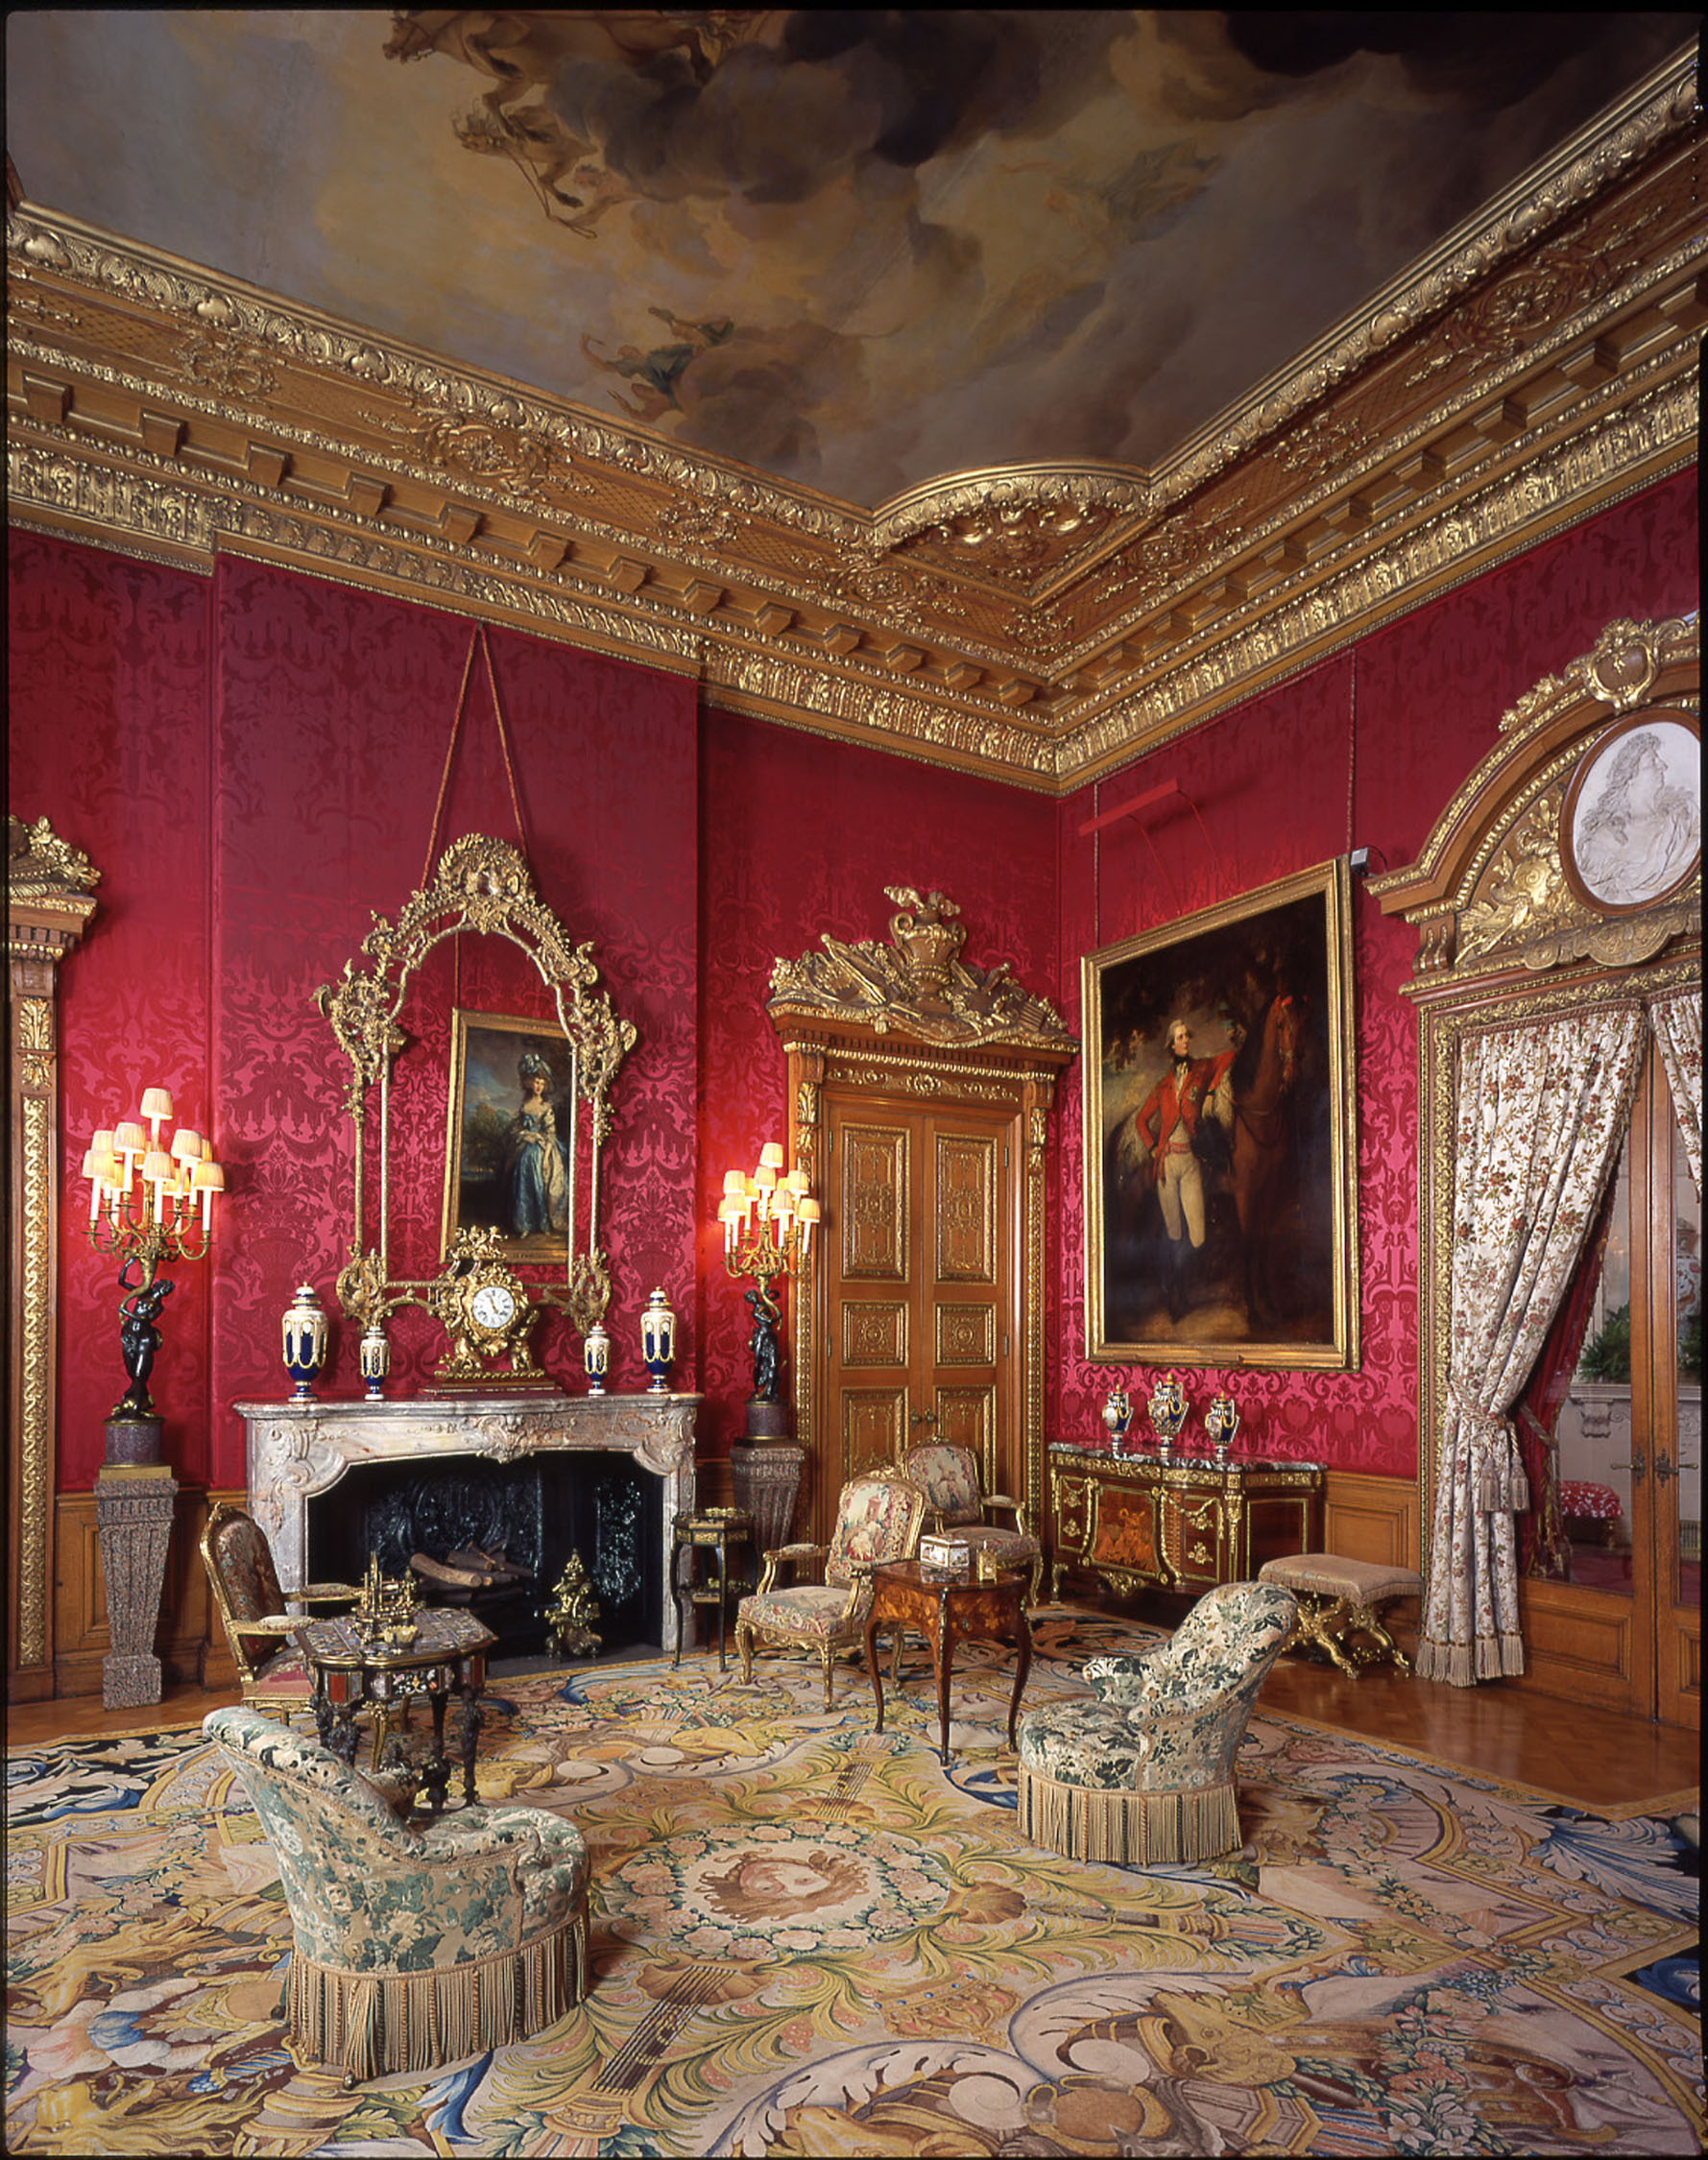 The Red Drawing Room, Waddesdon Manor, The Rothschild Collection (The National Trust). Photo John Bigelow Taylor ©The National Trust, Waddesdon Manor